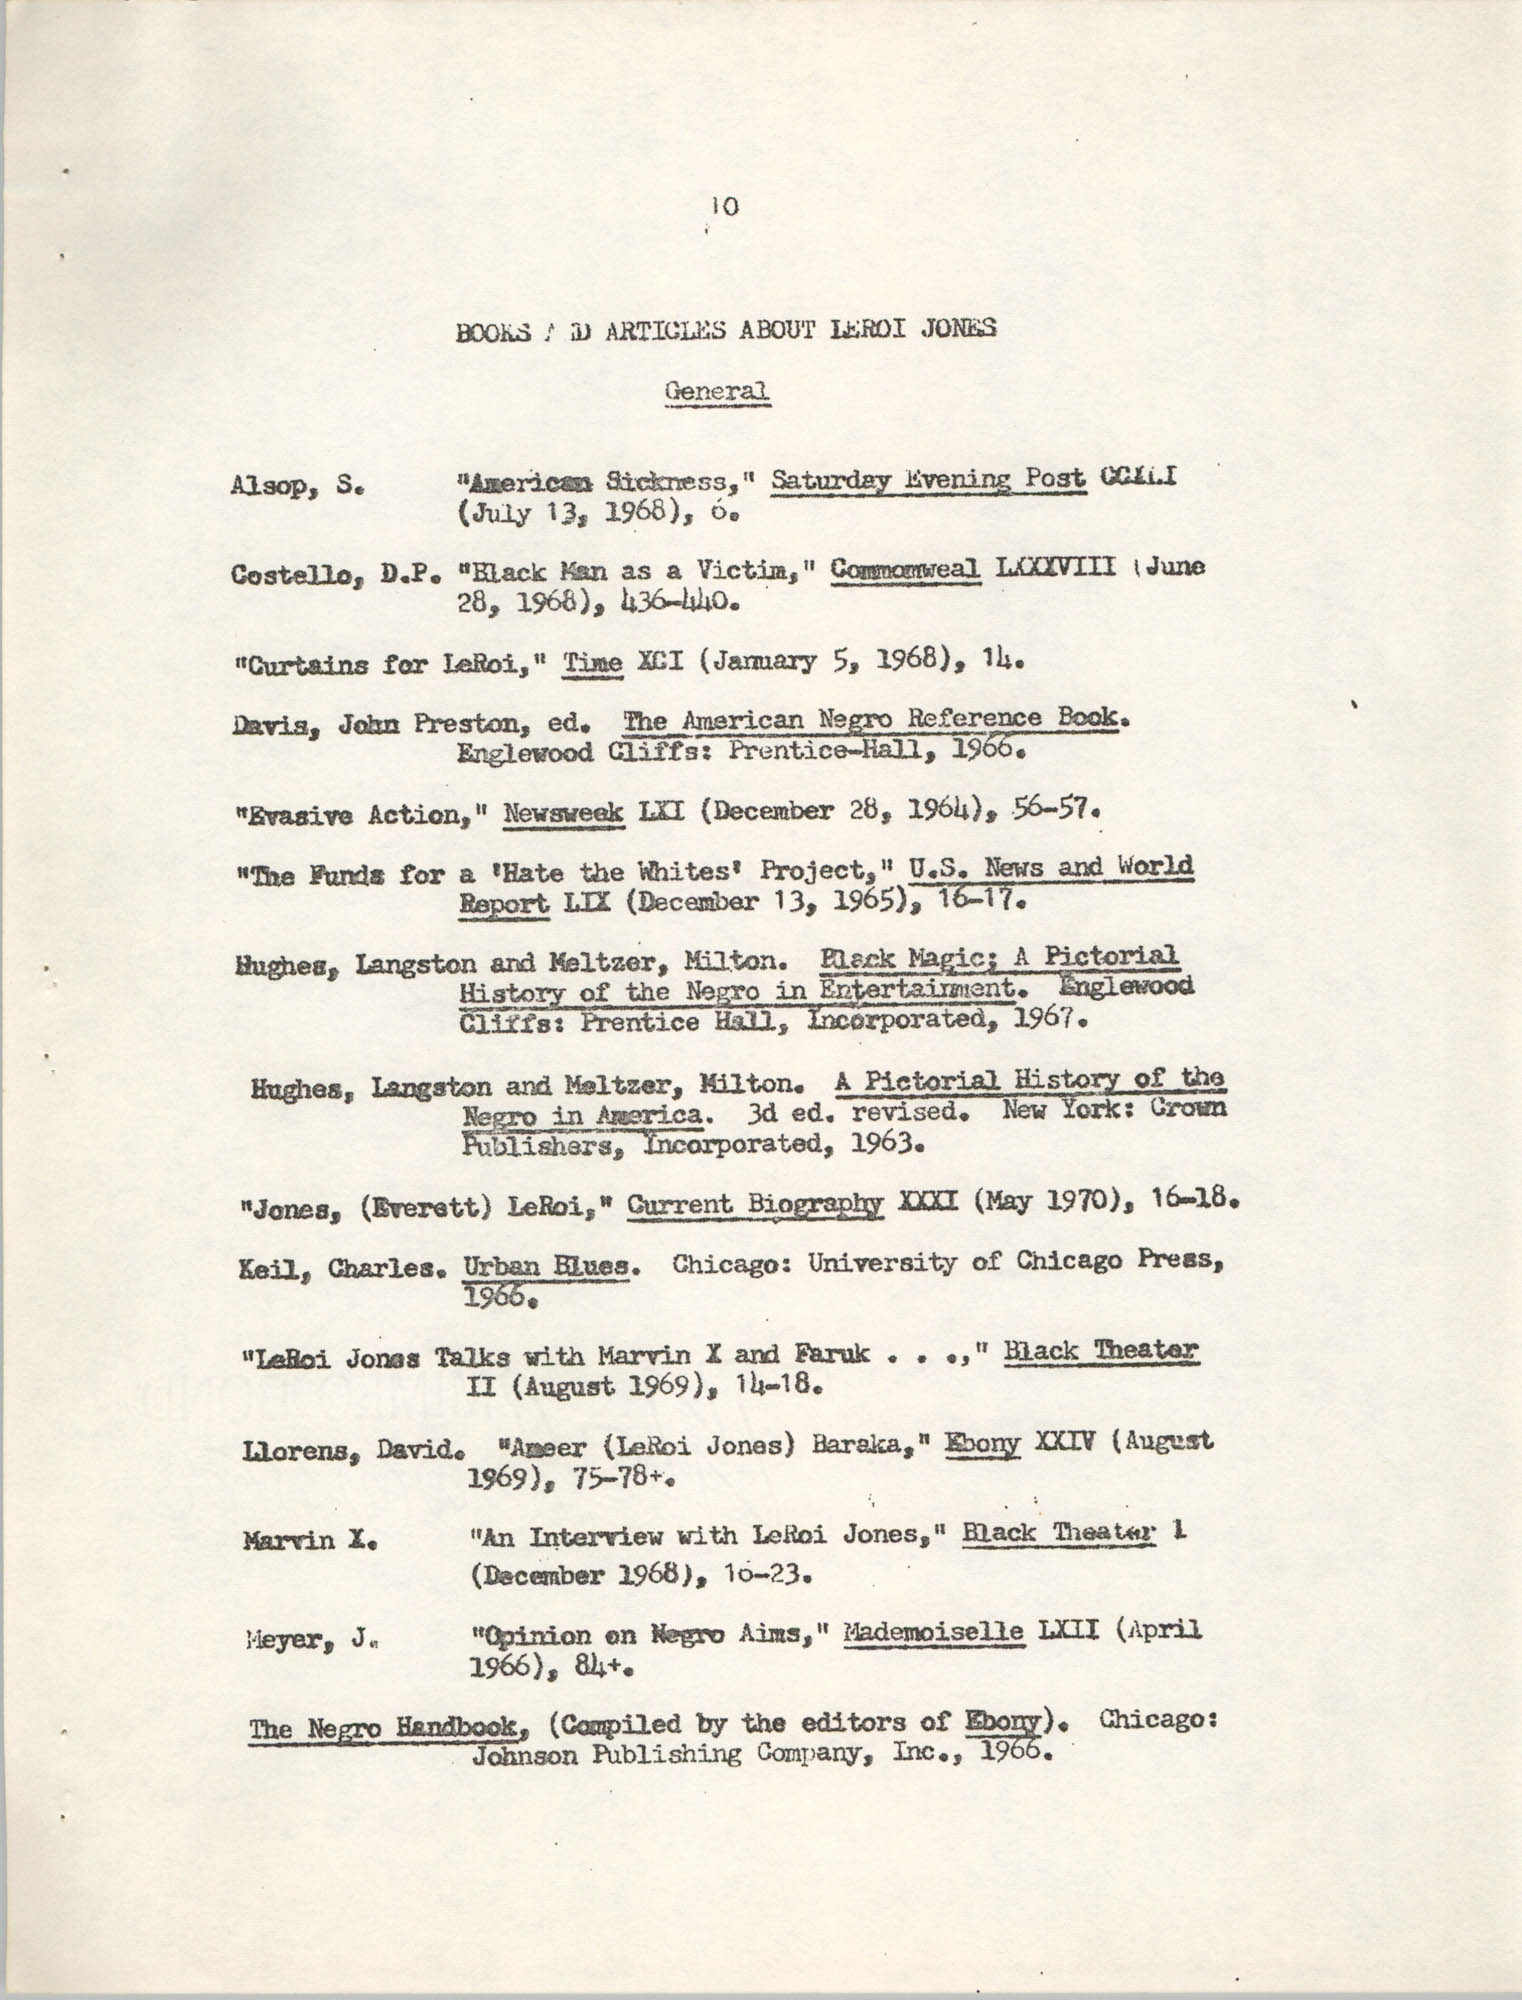 Center for African and African-American Studies Bibliography No. 2, Page 10